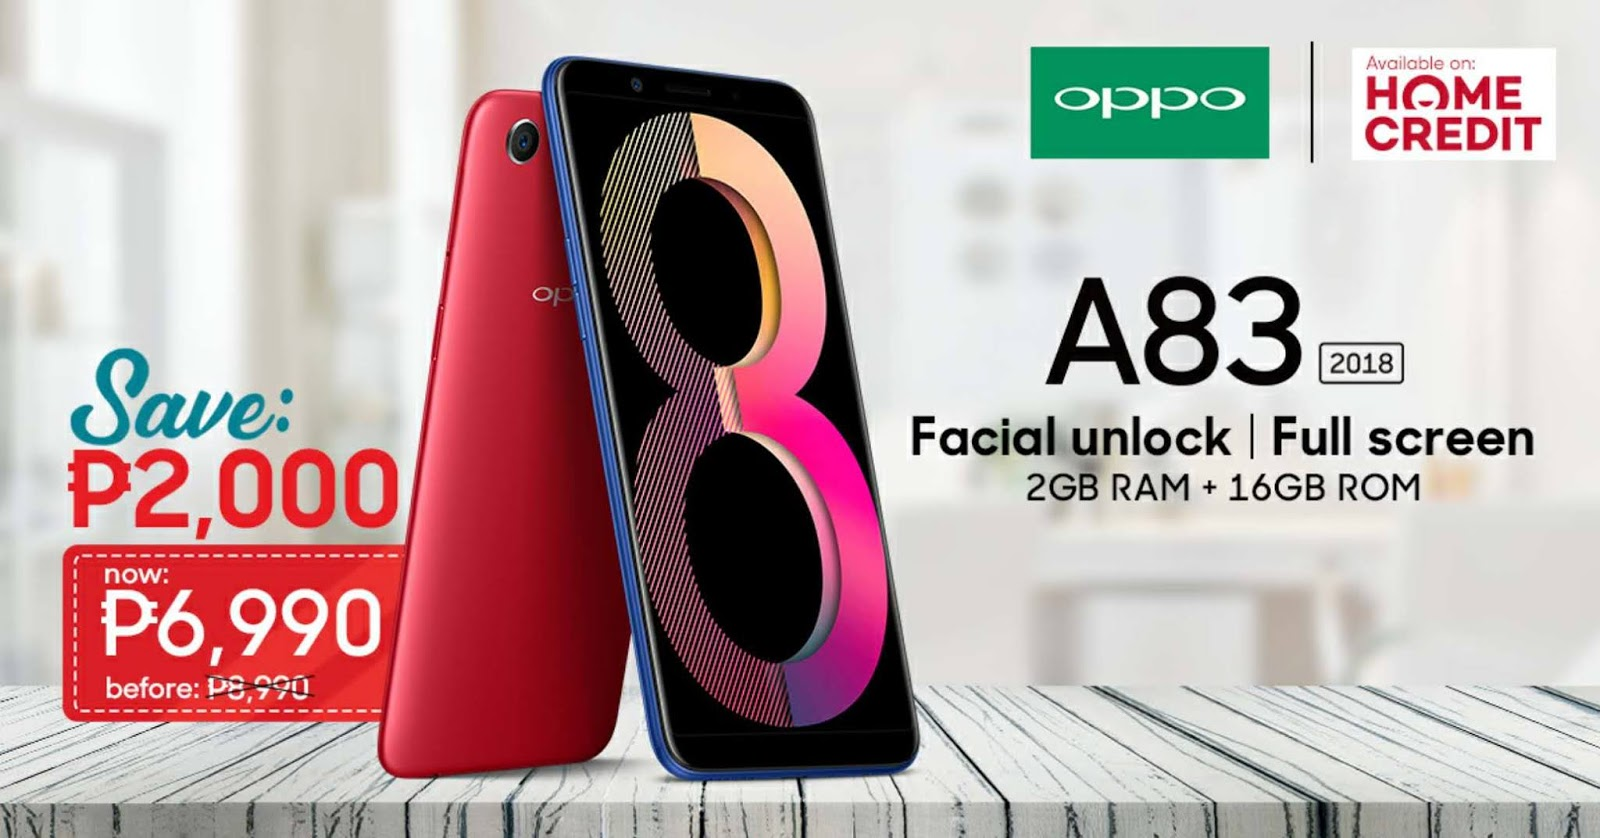 OPPO A83 now more competitive at PHP 6,990 with Face Unlock and Full